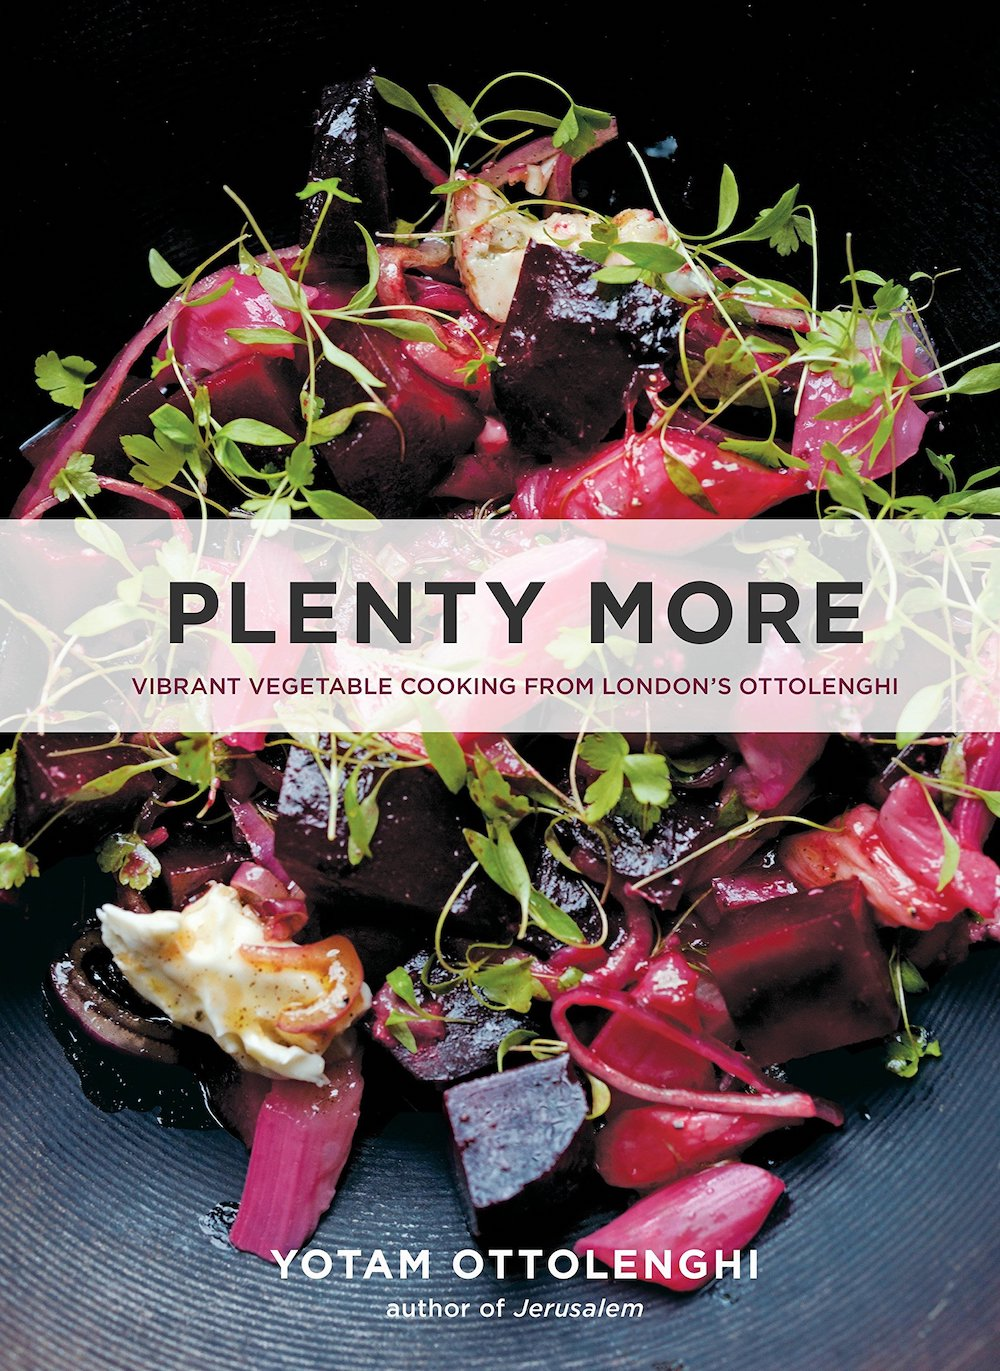 Plenty More cookbook by Yotam Ottolenghi author of Jerusalem cook book ideas